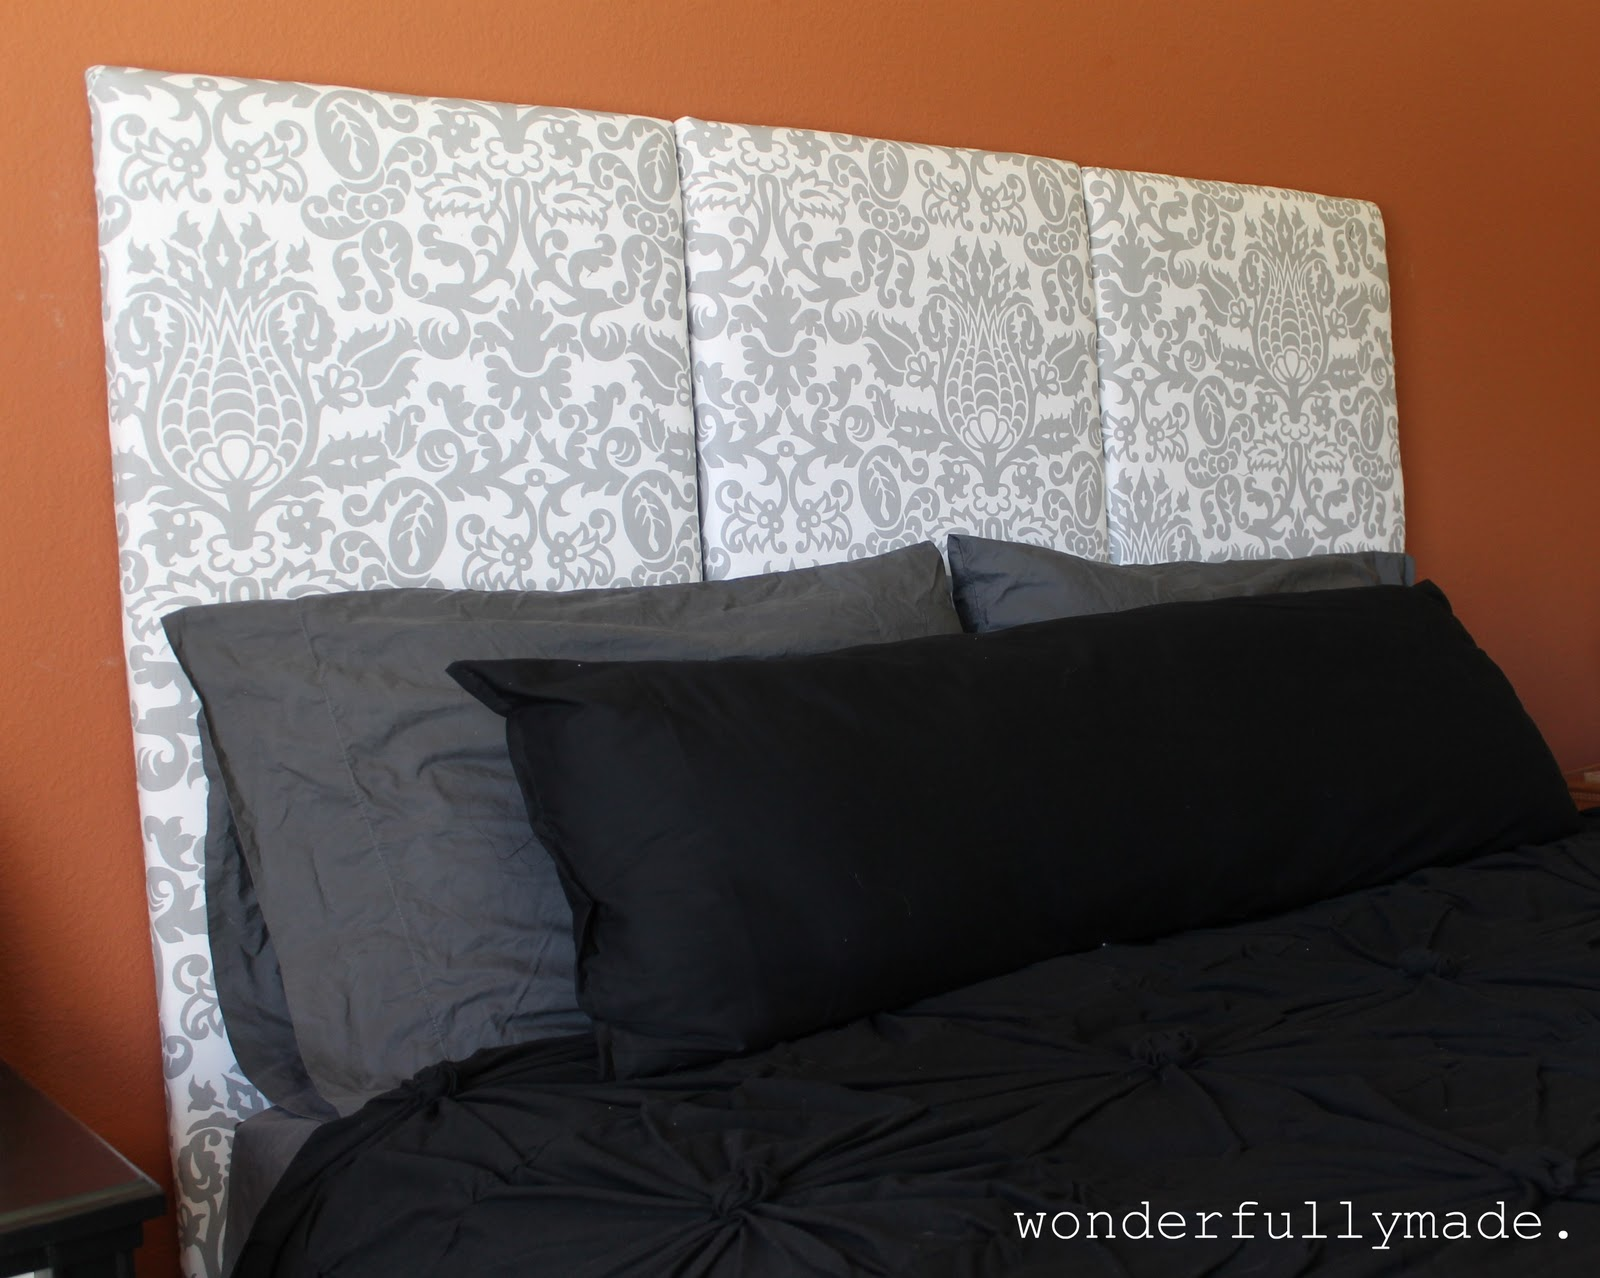 Wonderfully Made: My DIY Upholstered Headboard